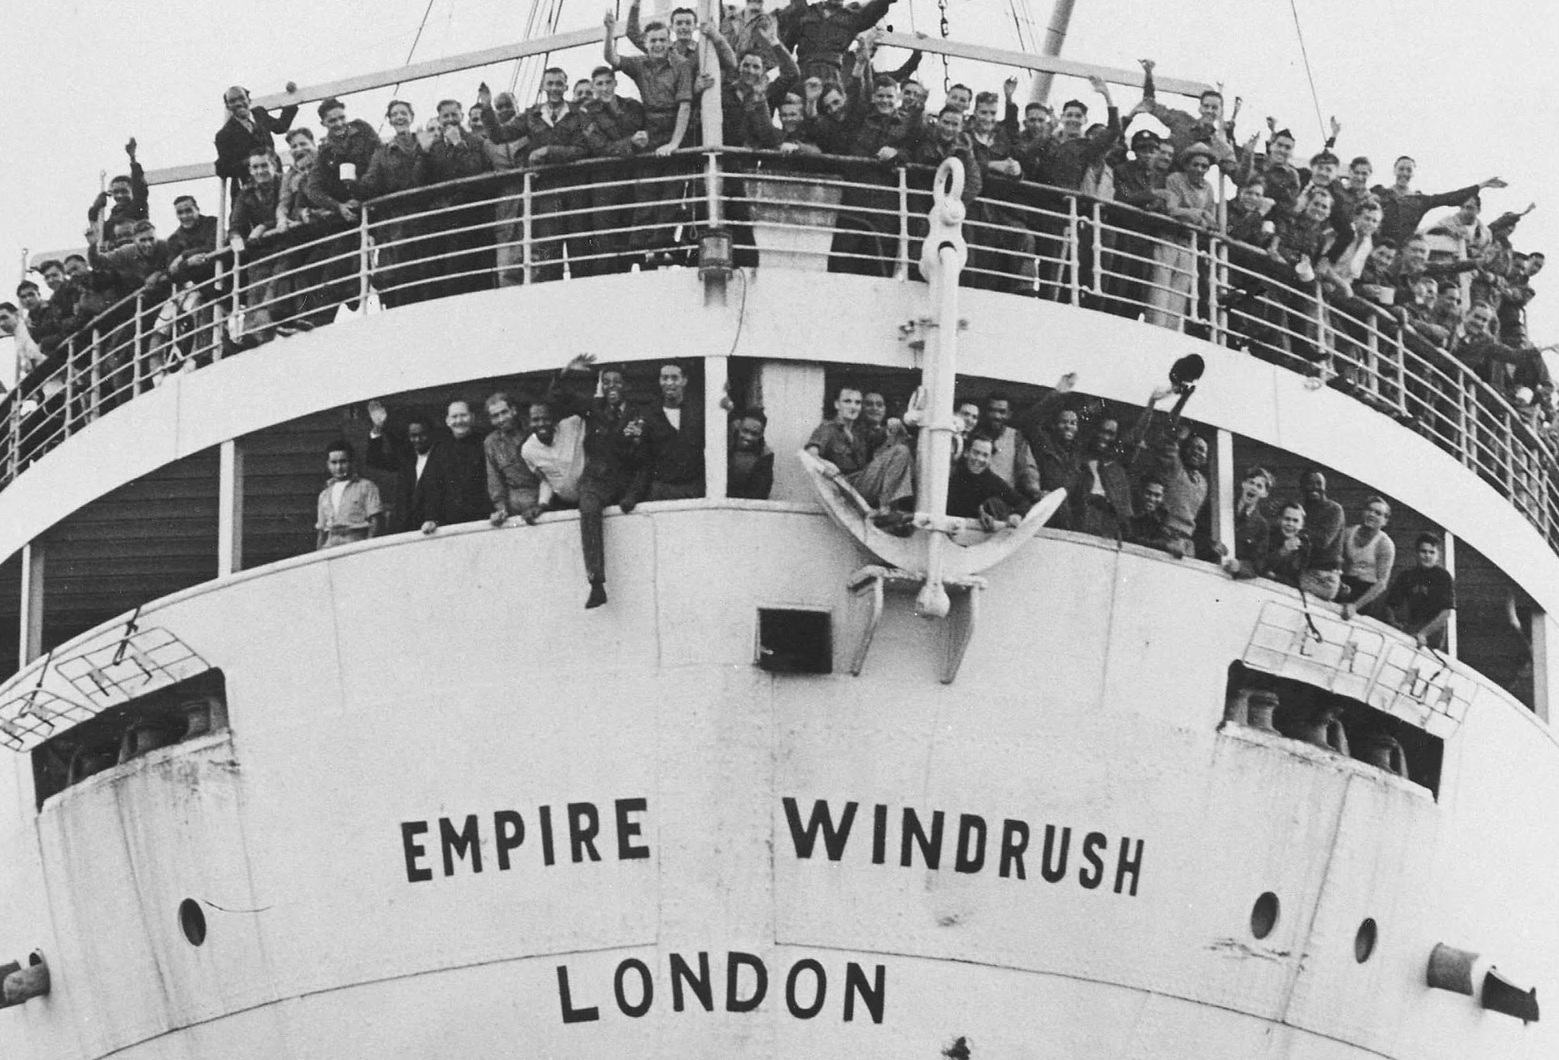 Arrival - the Windrush approaches Tilbury Docks in June 1948